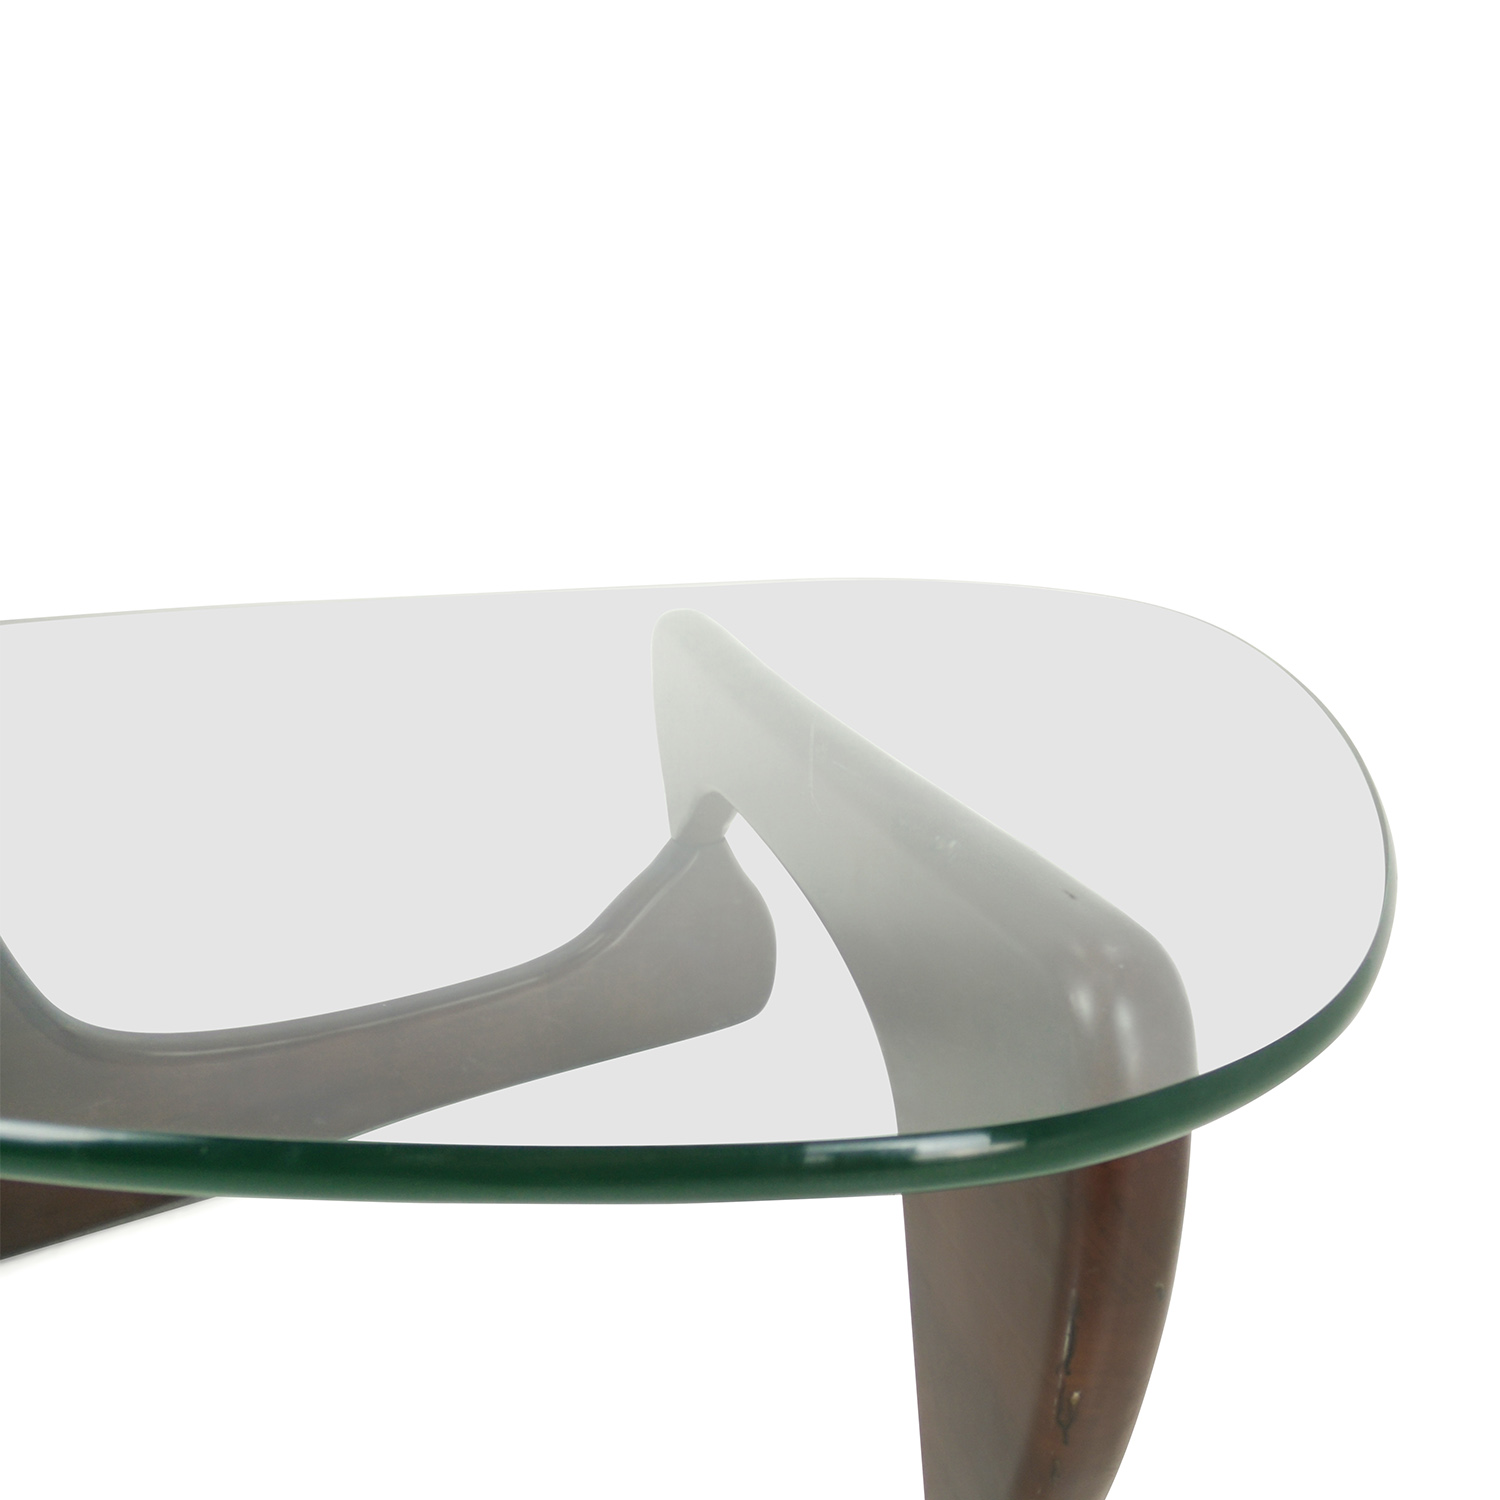 83 off herman miller replica noguchi table replica tables Herman miller noguchi coffee table